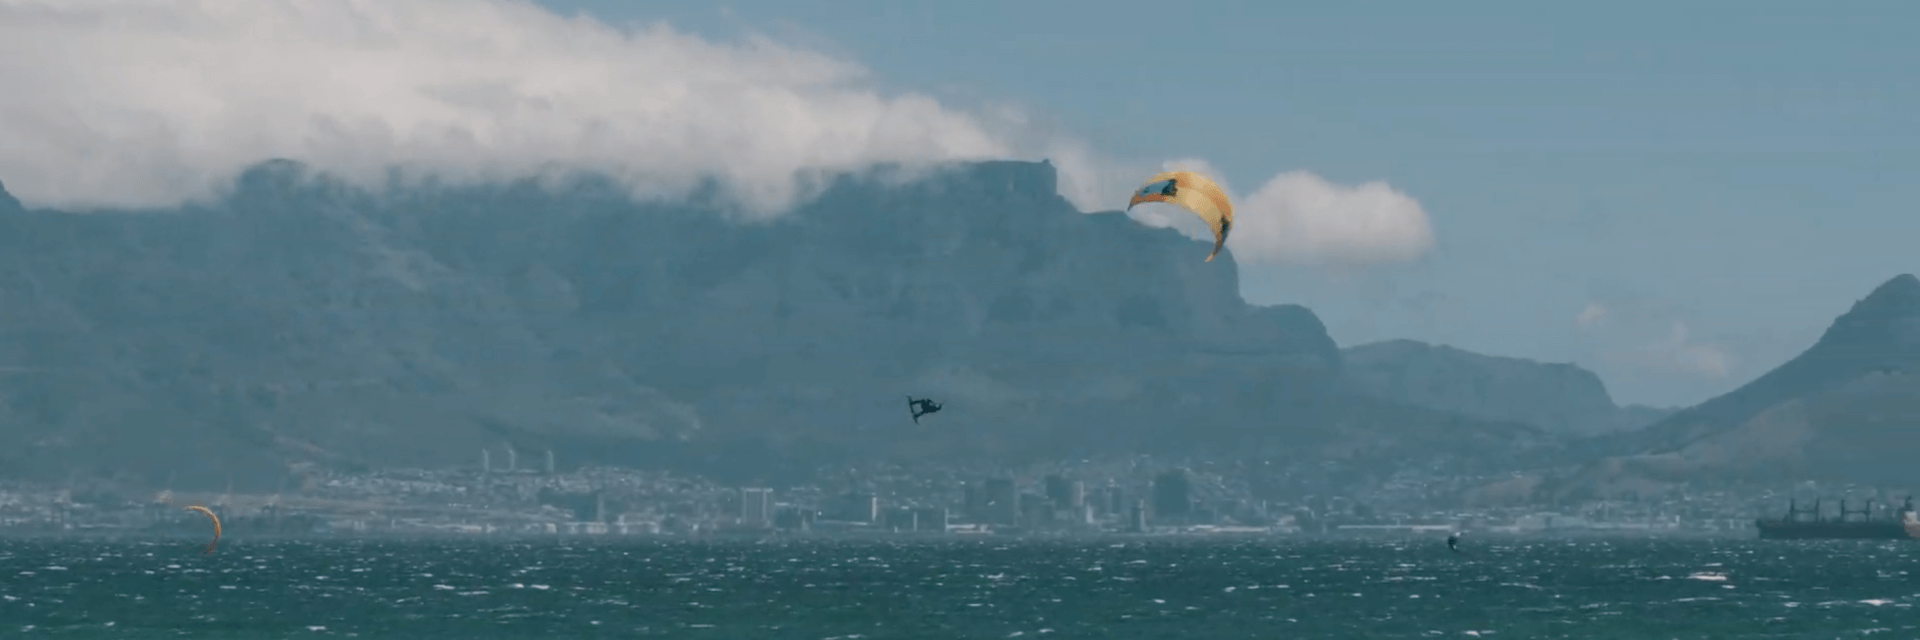 Duotone_Kiteboarding_Dice_2019_King_of_the_air